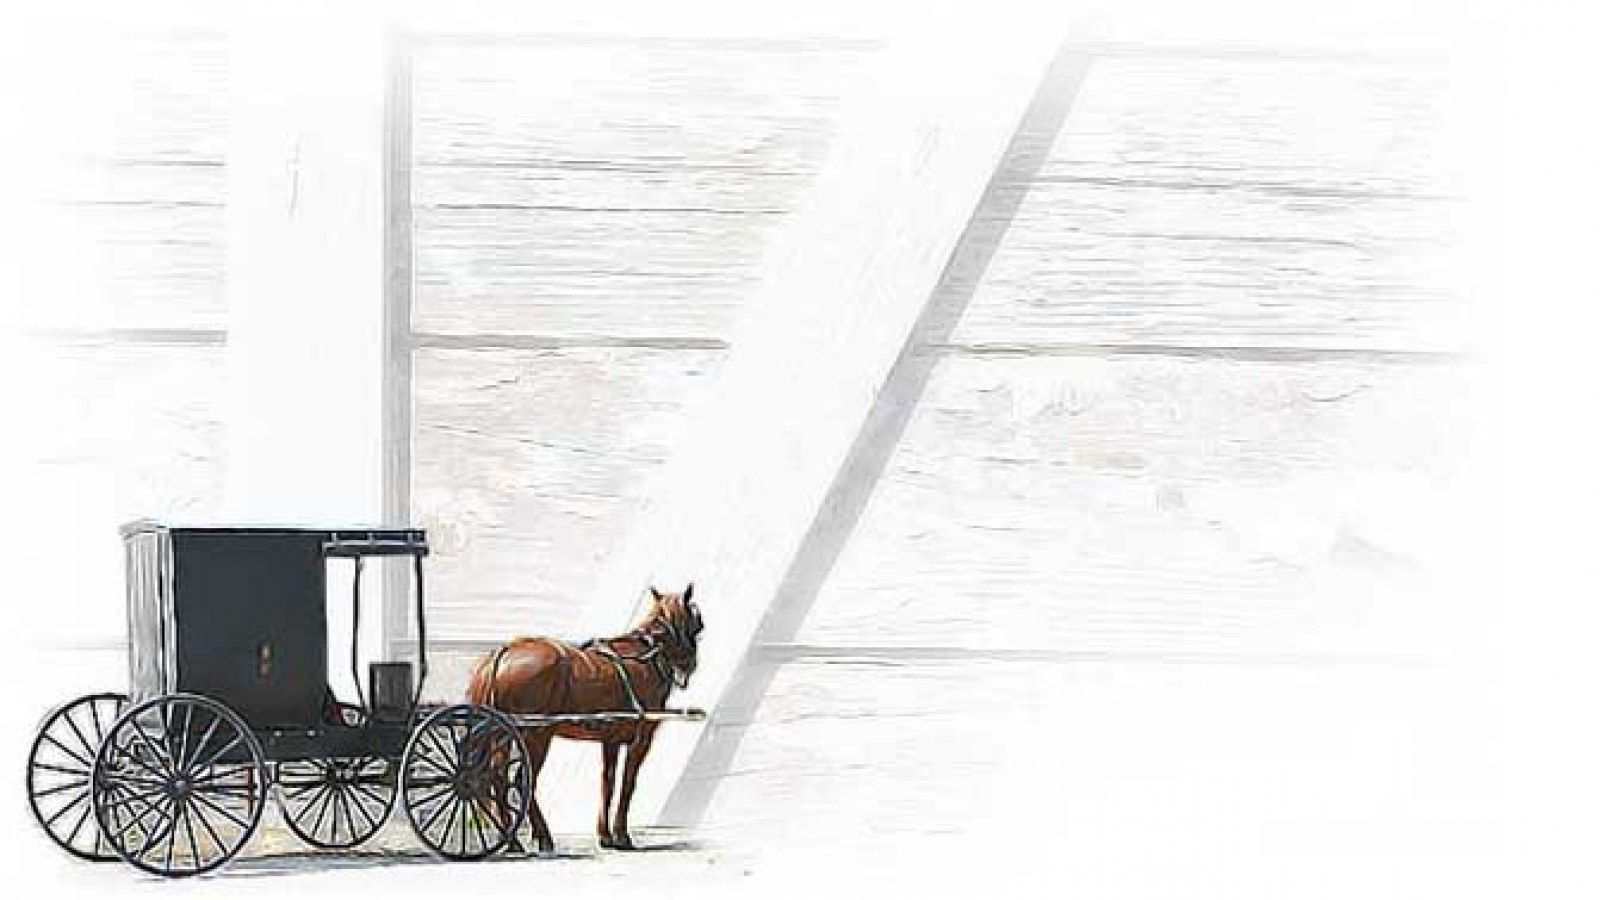 Amish Buggy and horse with faded white-washed boards in the background